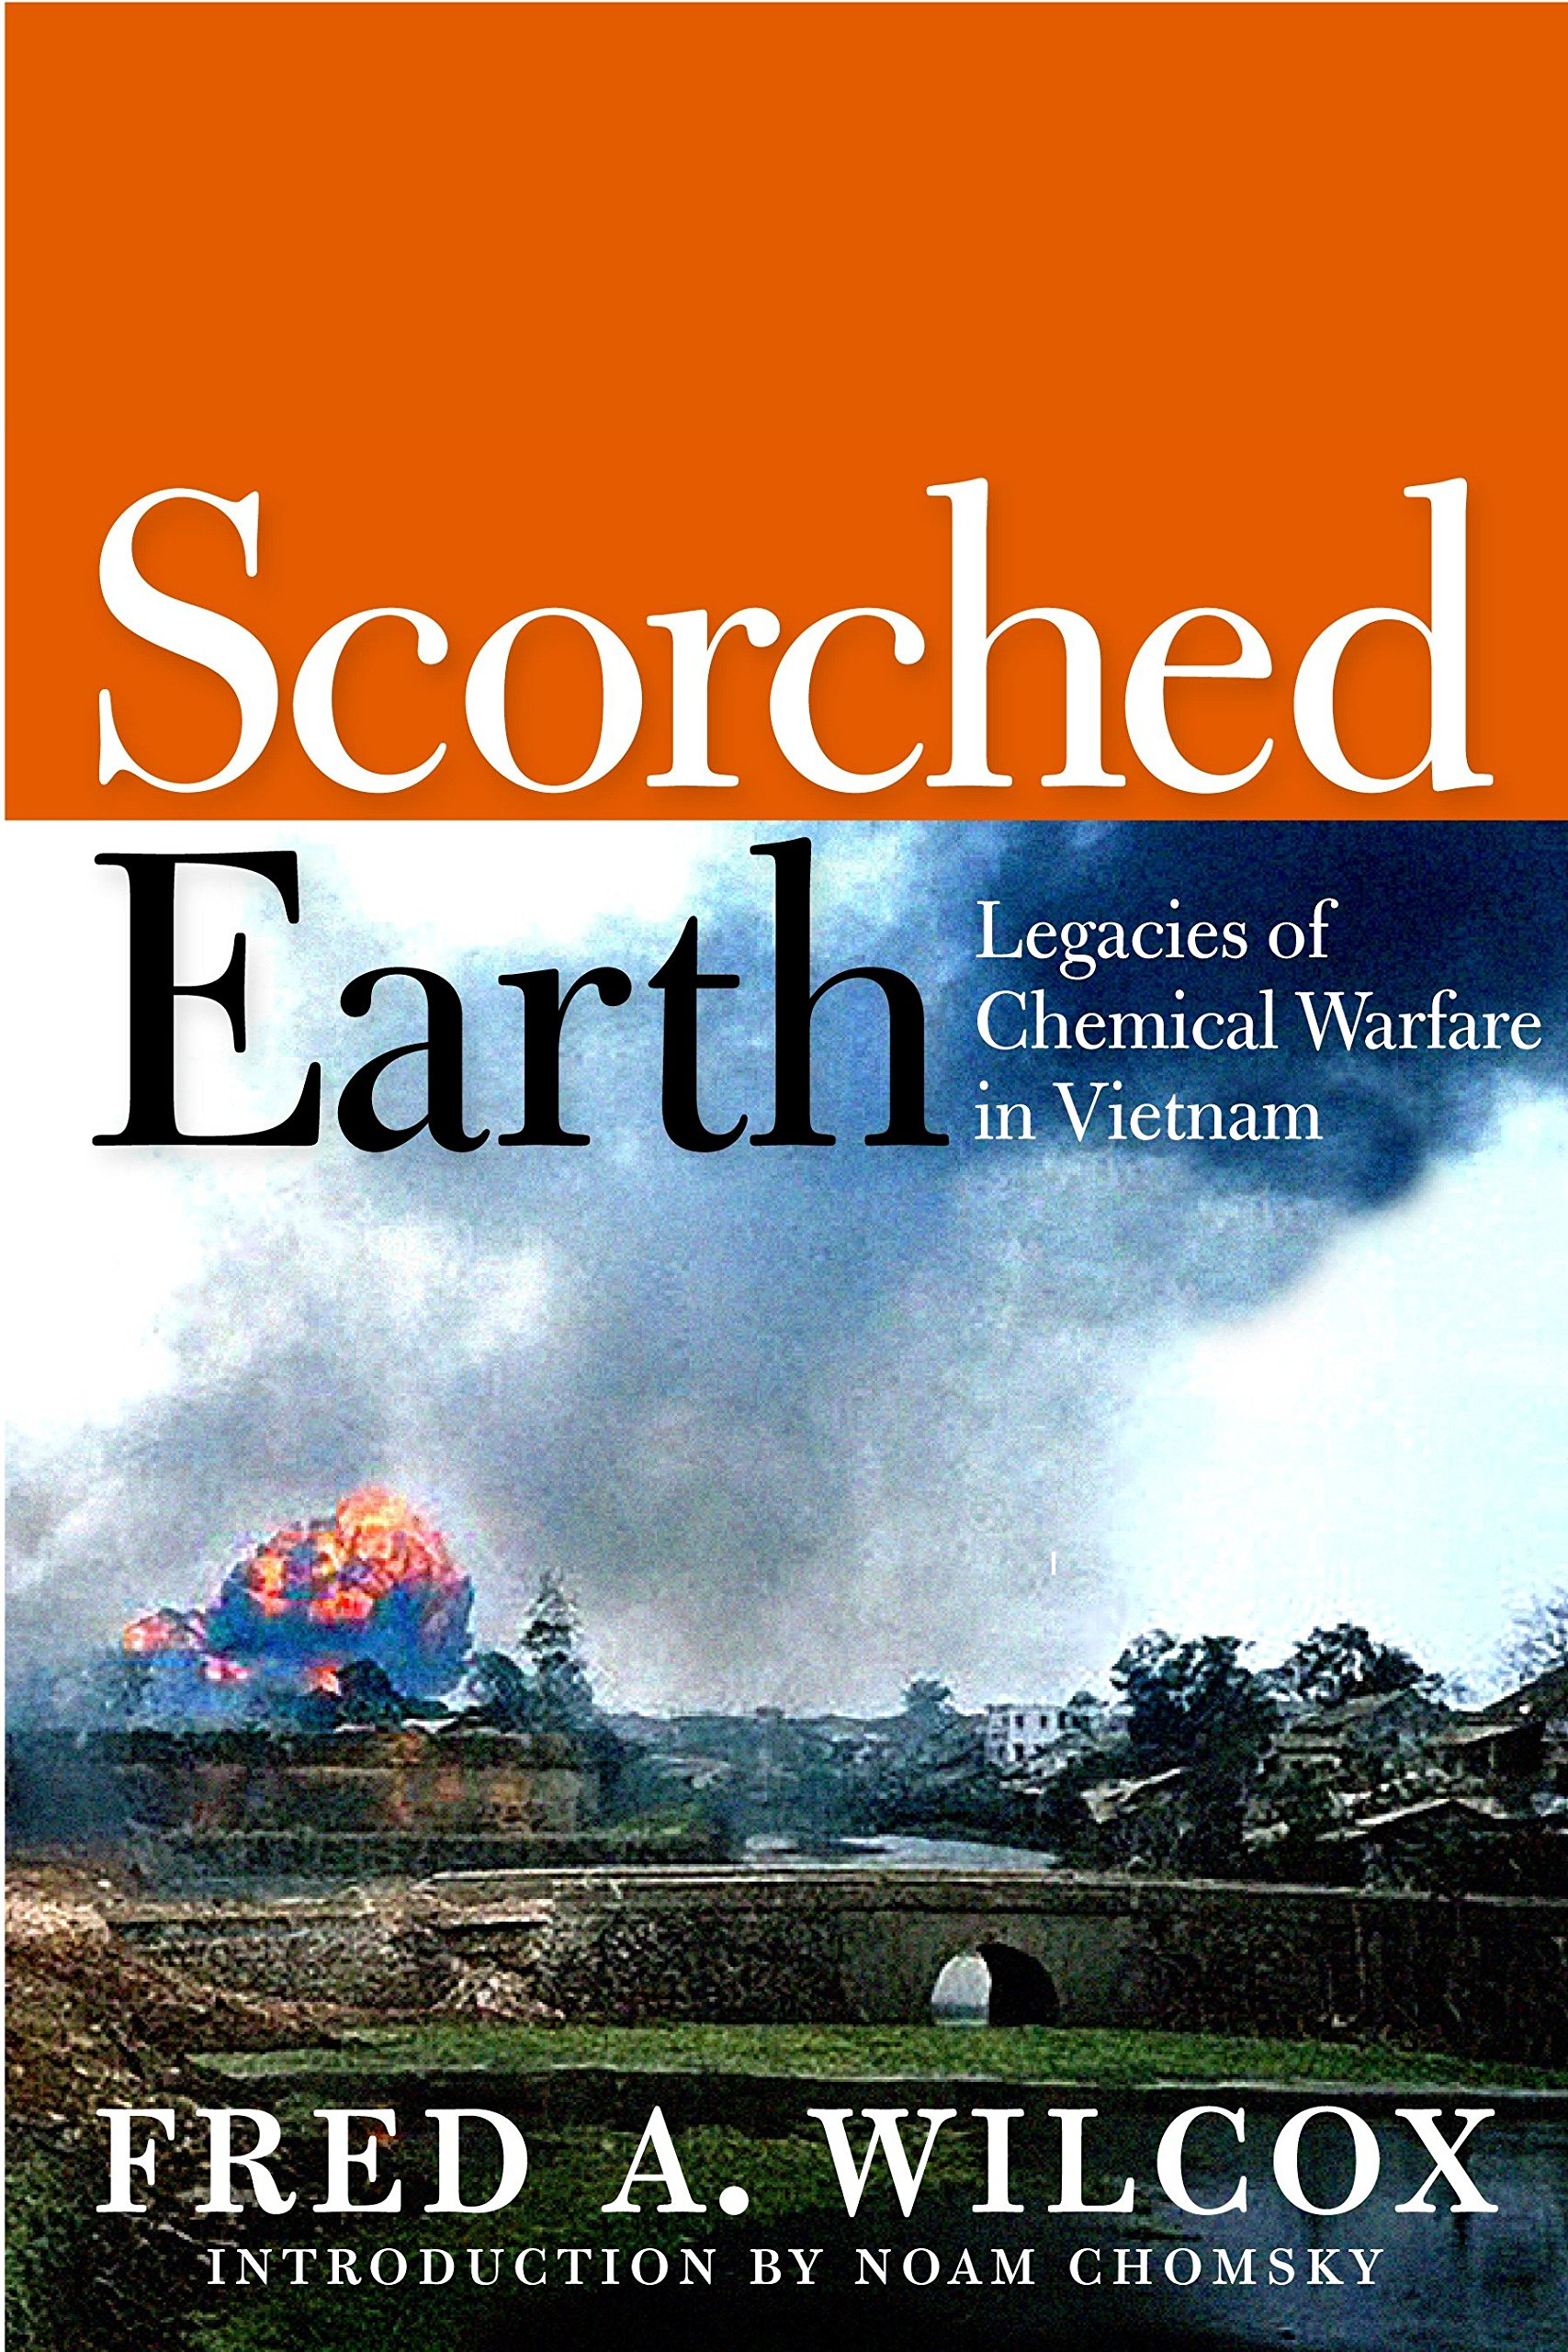 Scorched Earth: Legacies of Chemical Warfare in Vietnam pdf